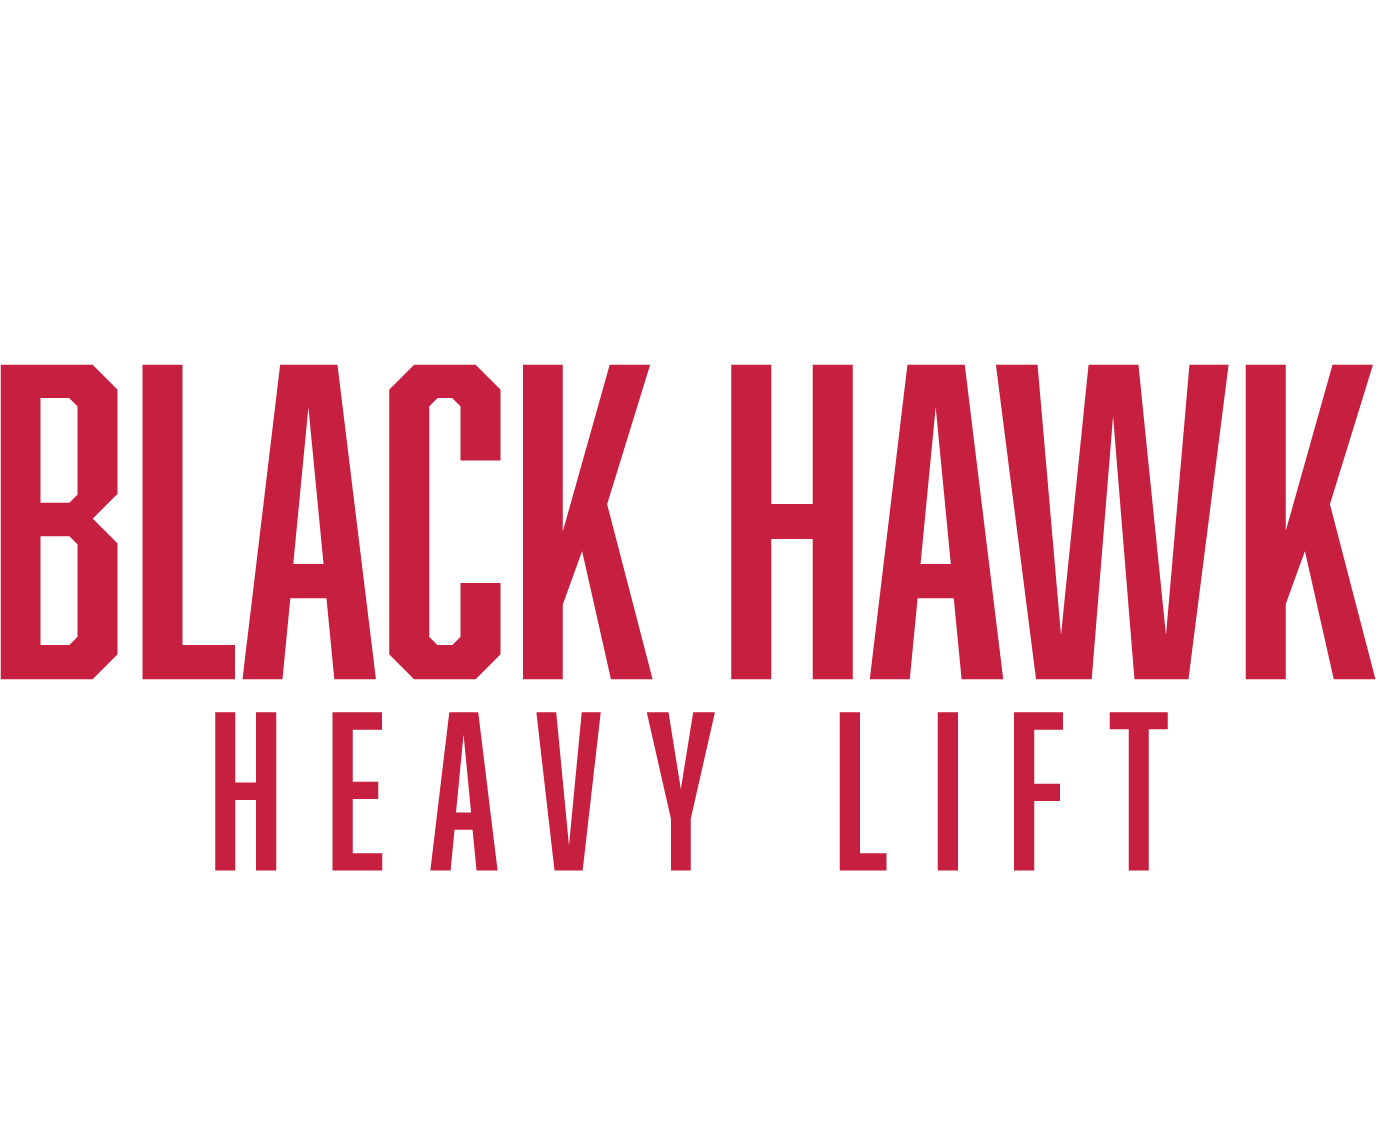 Black Hawk Heavy Lift